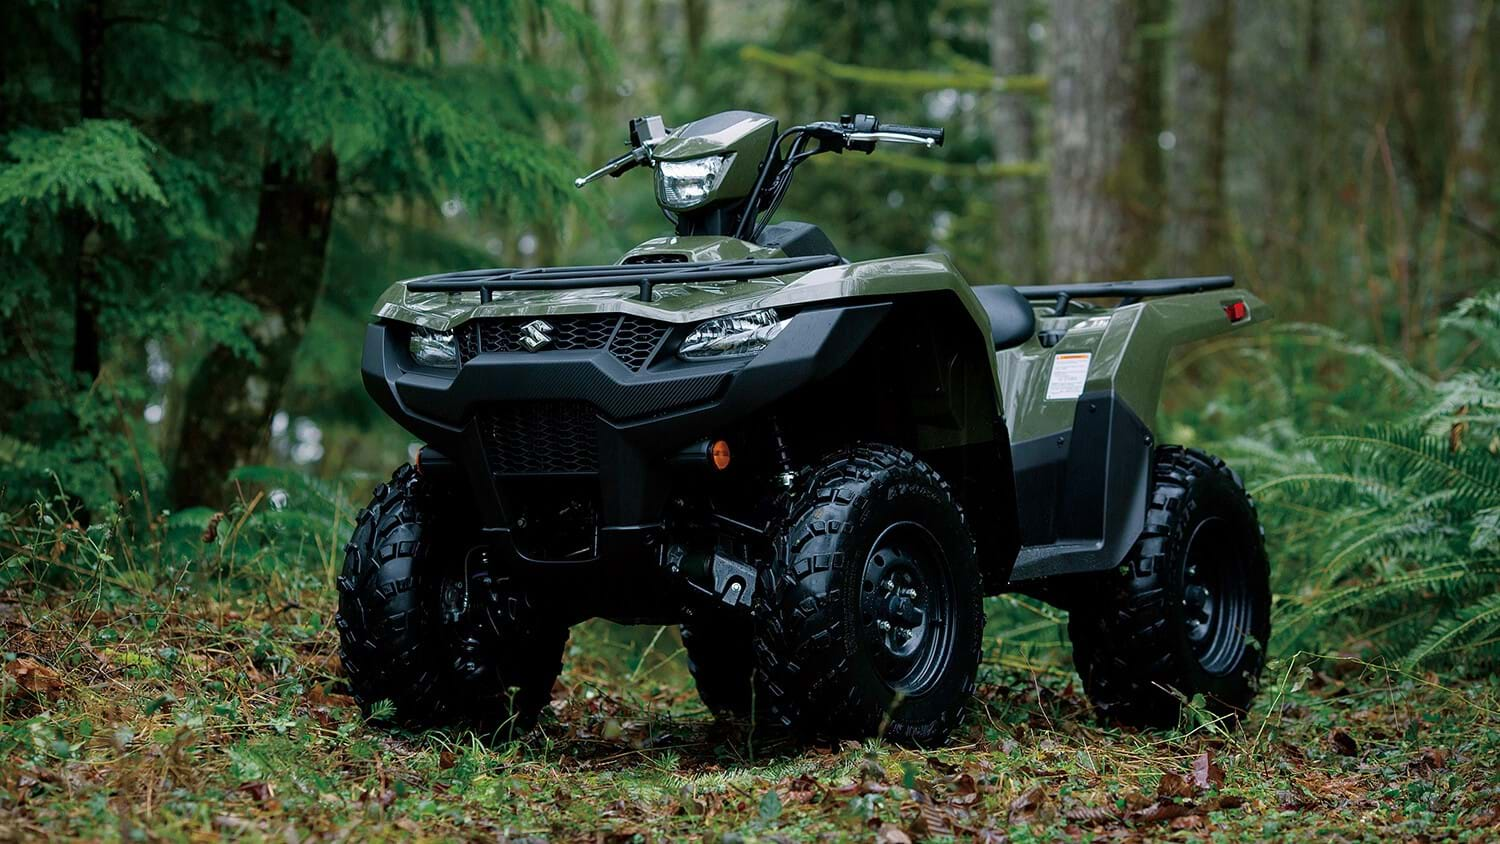 Suzuki green KingQuad